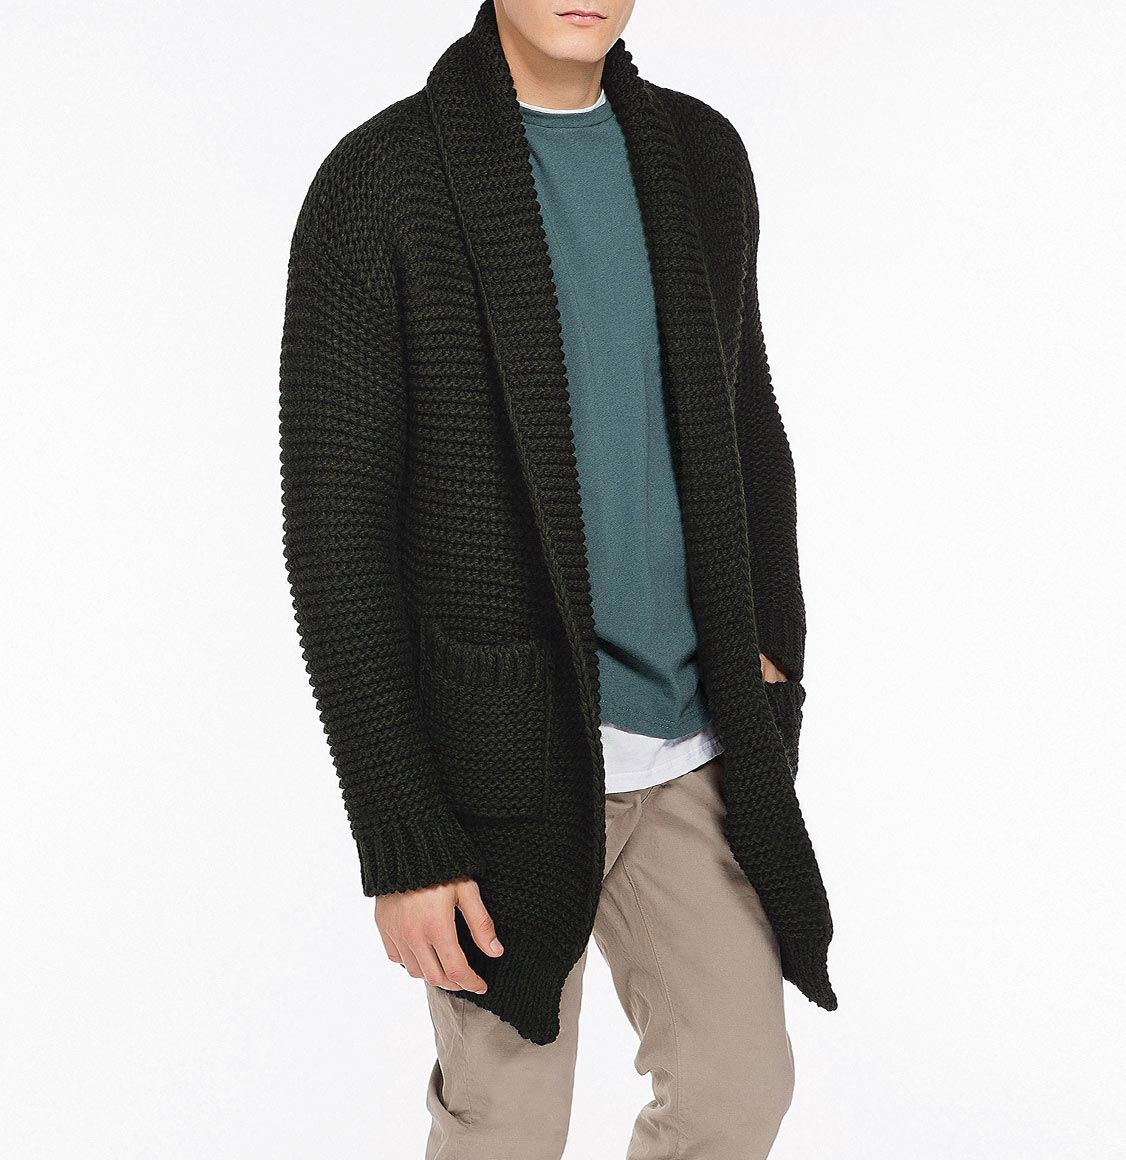 Oversized Shawl Collar Wool Blend Cardigan Army Green